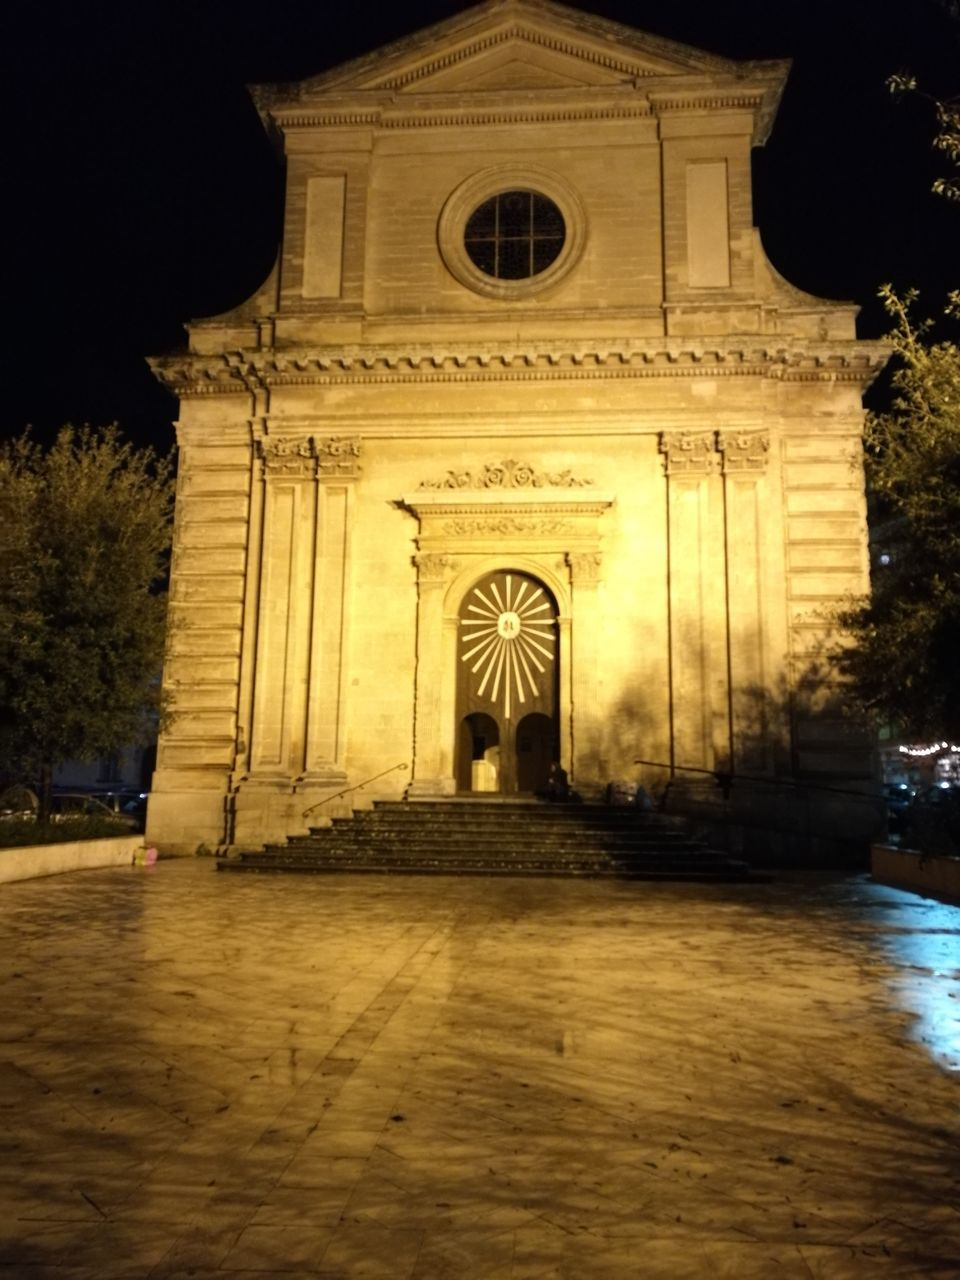 history, architecture, built structure, arch, travel destinations, spirituality, religion, place of worship, no people, outdoors, night, illuminated, building exterior